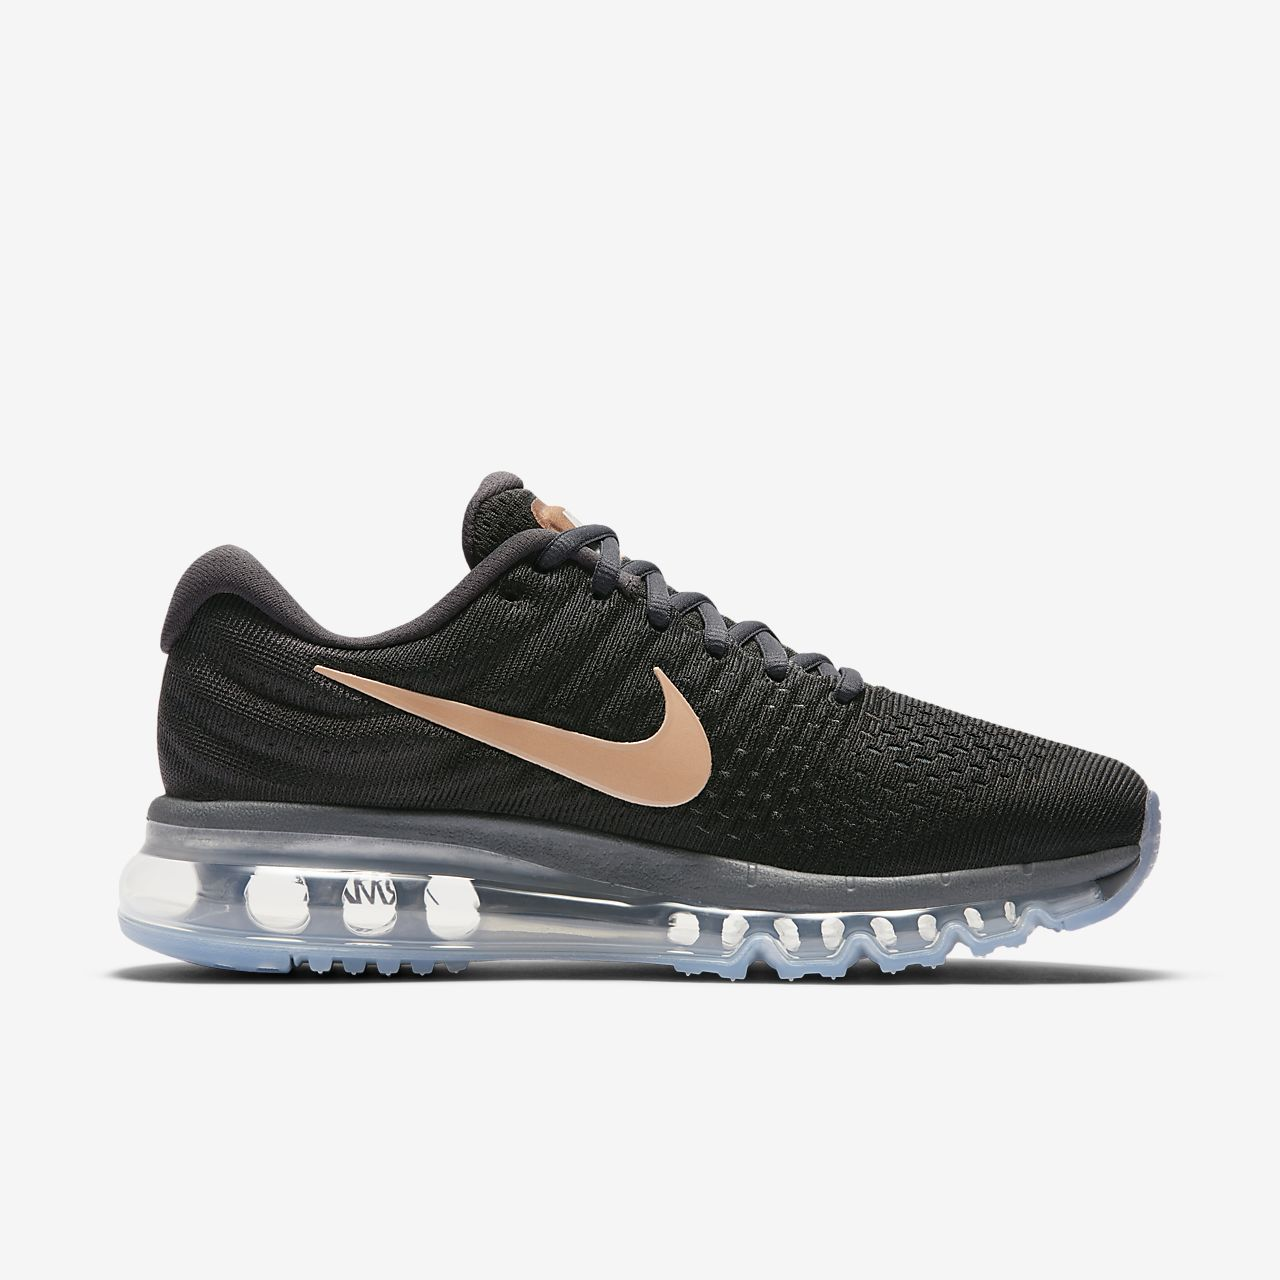 nike air max 2017 zwart wit dames